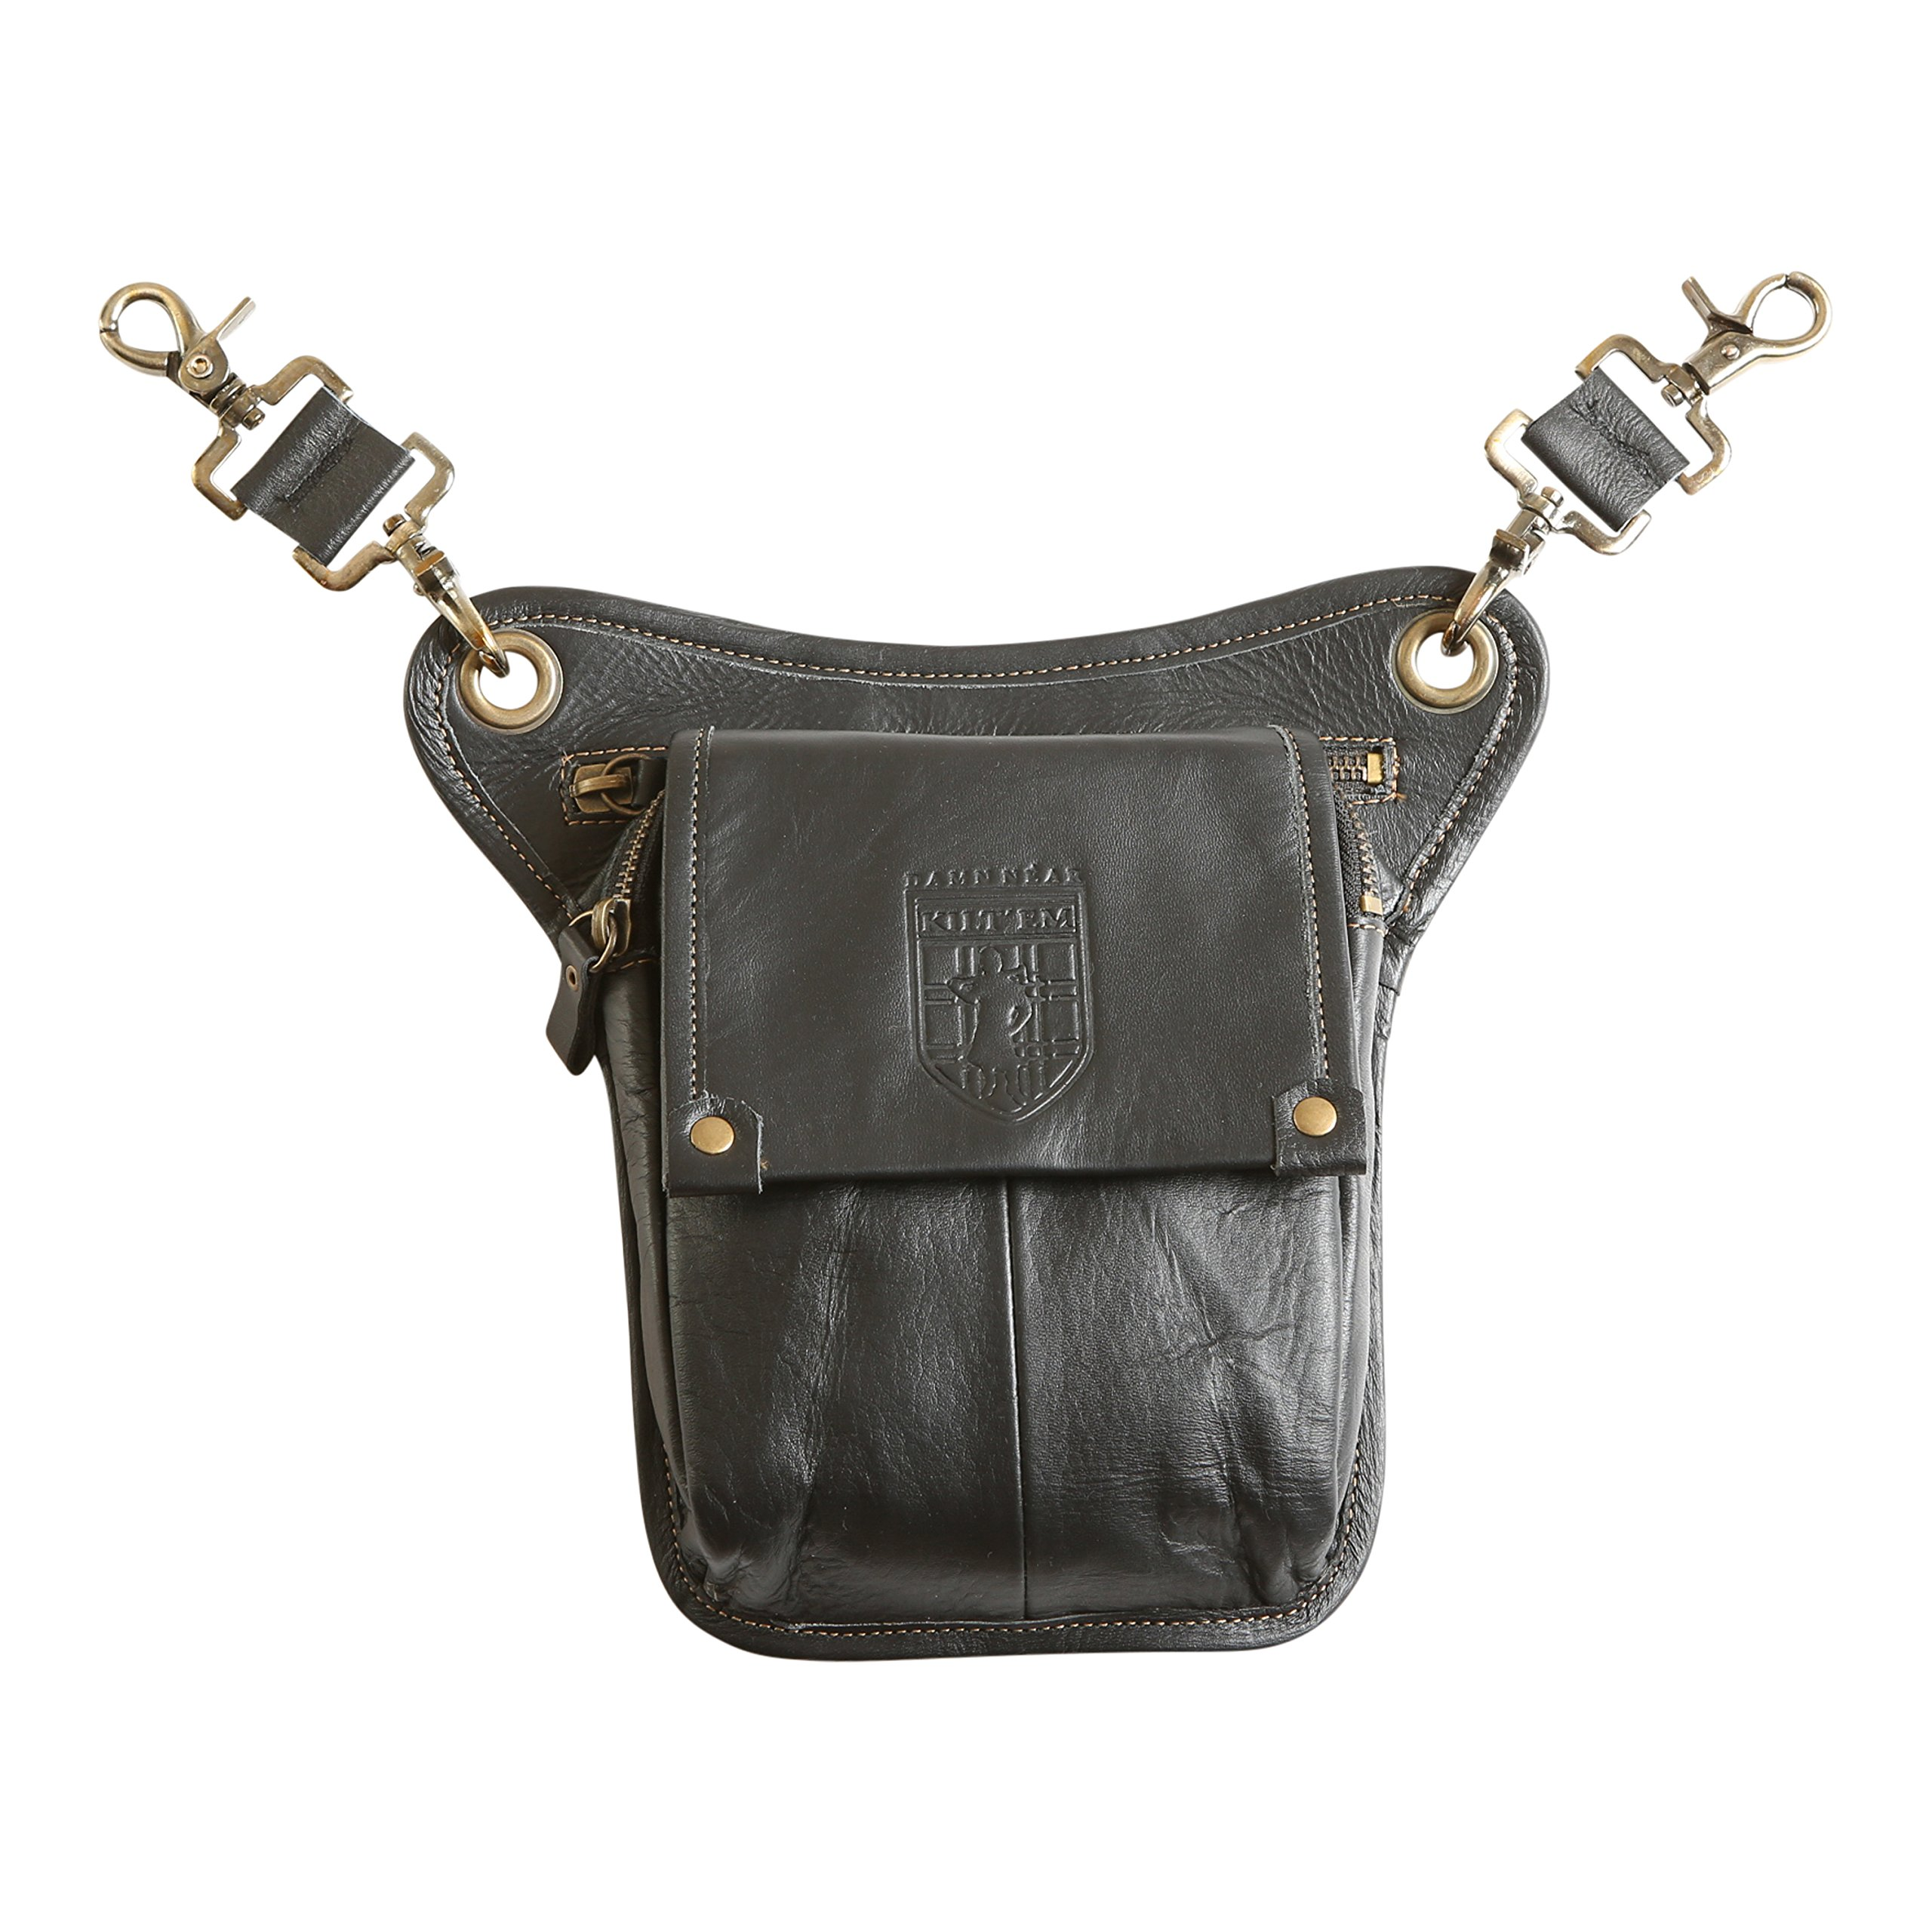 Damn Near Kilt 'Em Premium Black Leather Sporran Kilt Accessory